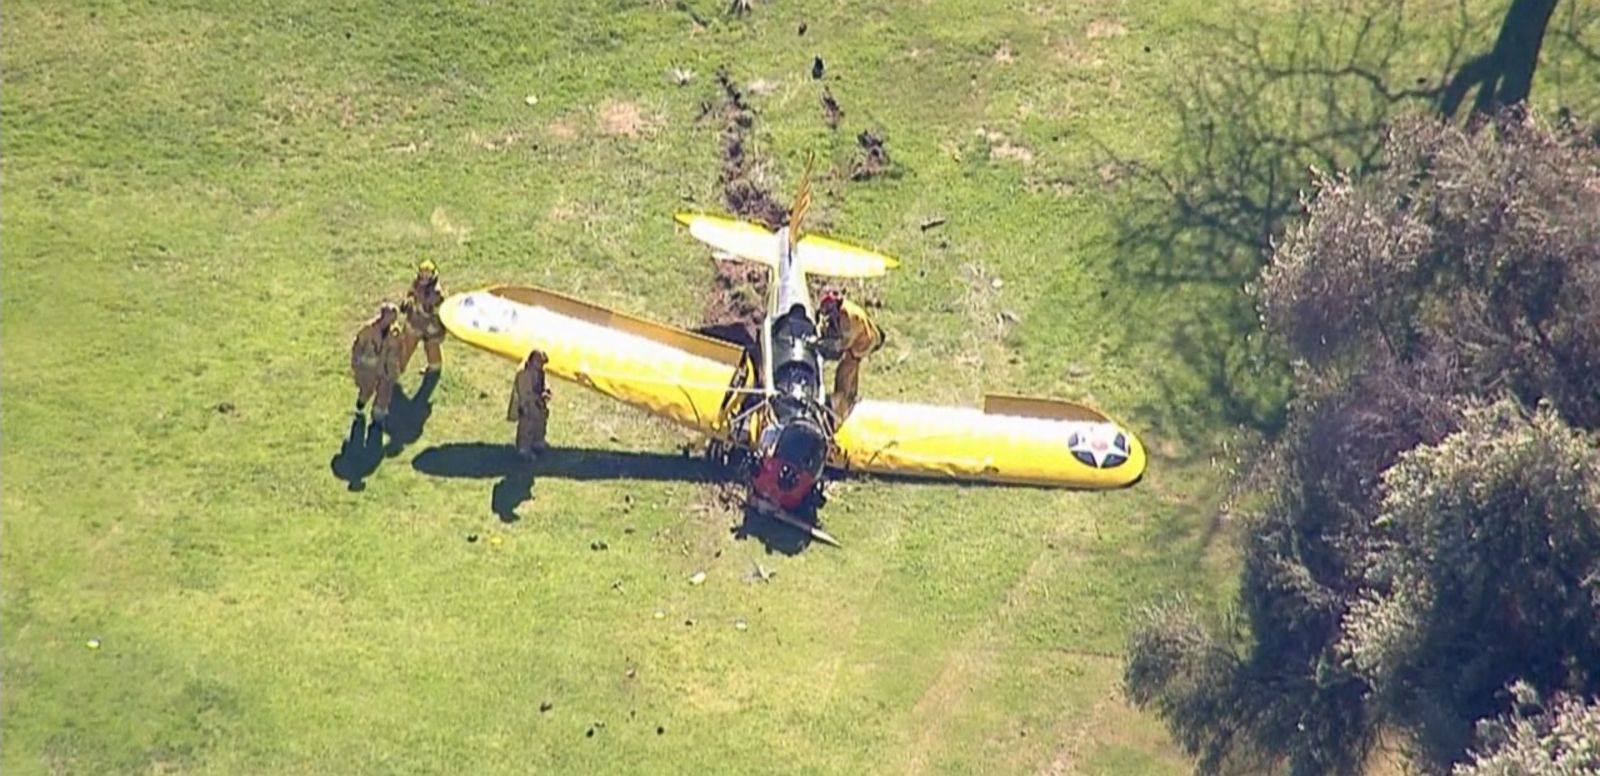 VIDEO: The veteran pilot crashed a small plane on a golf course near Santa Monica, C.A. and was taken to an area hospital.